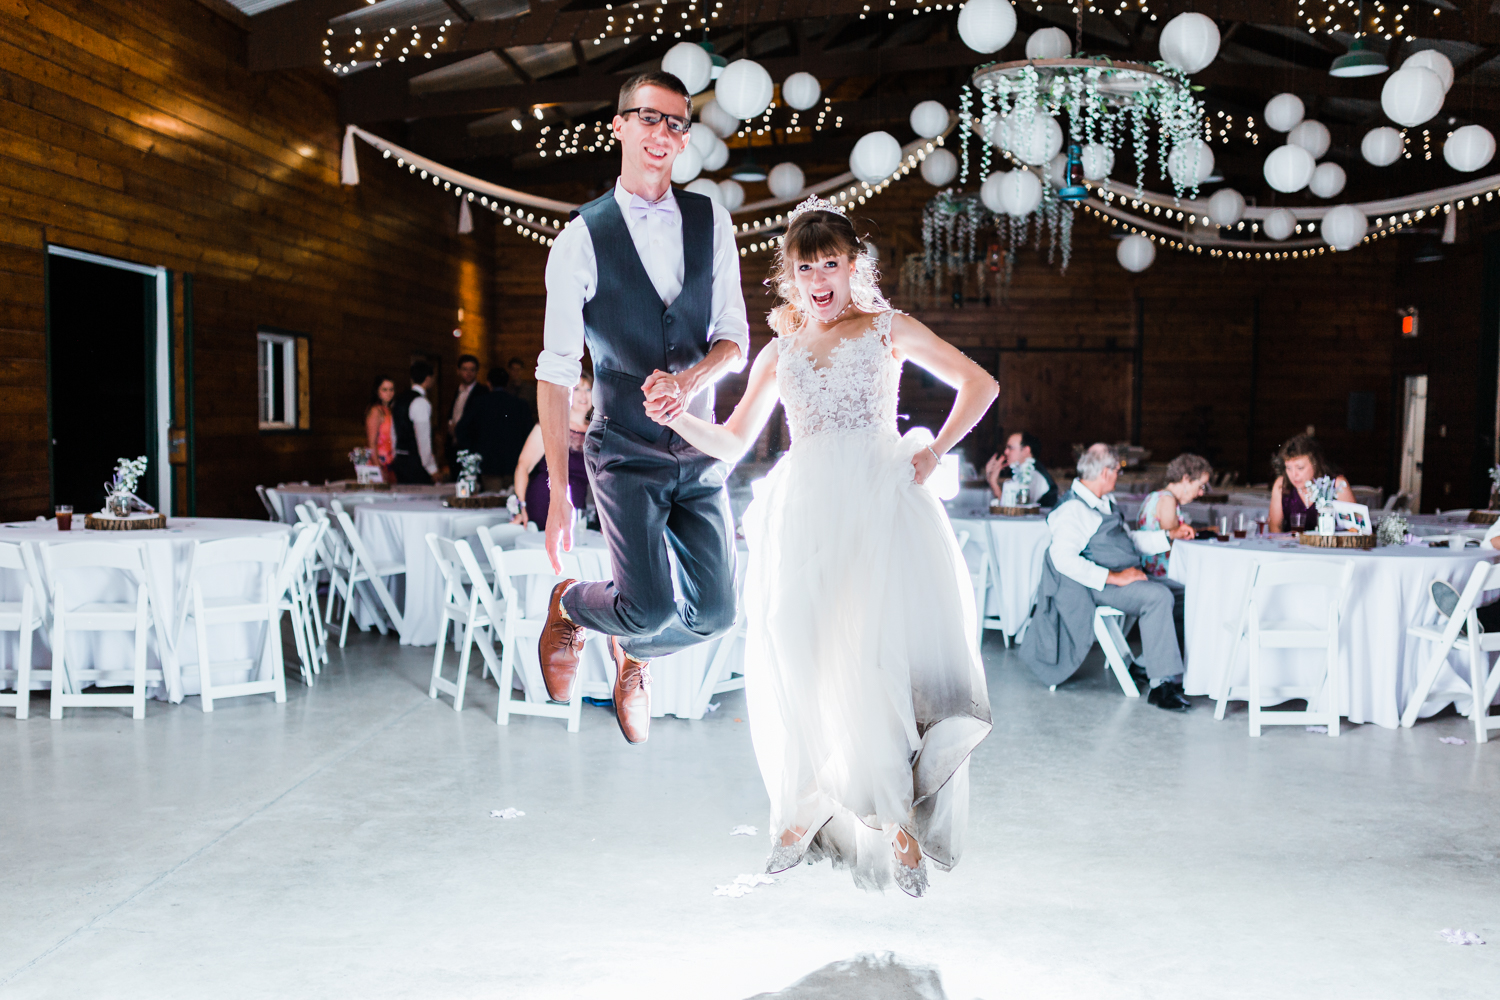 bride and groom jumping together and having fun - night reception - maryland wedding photographer